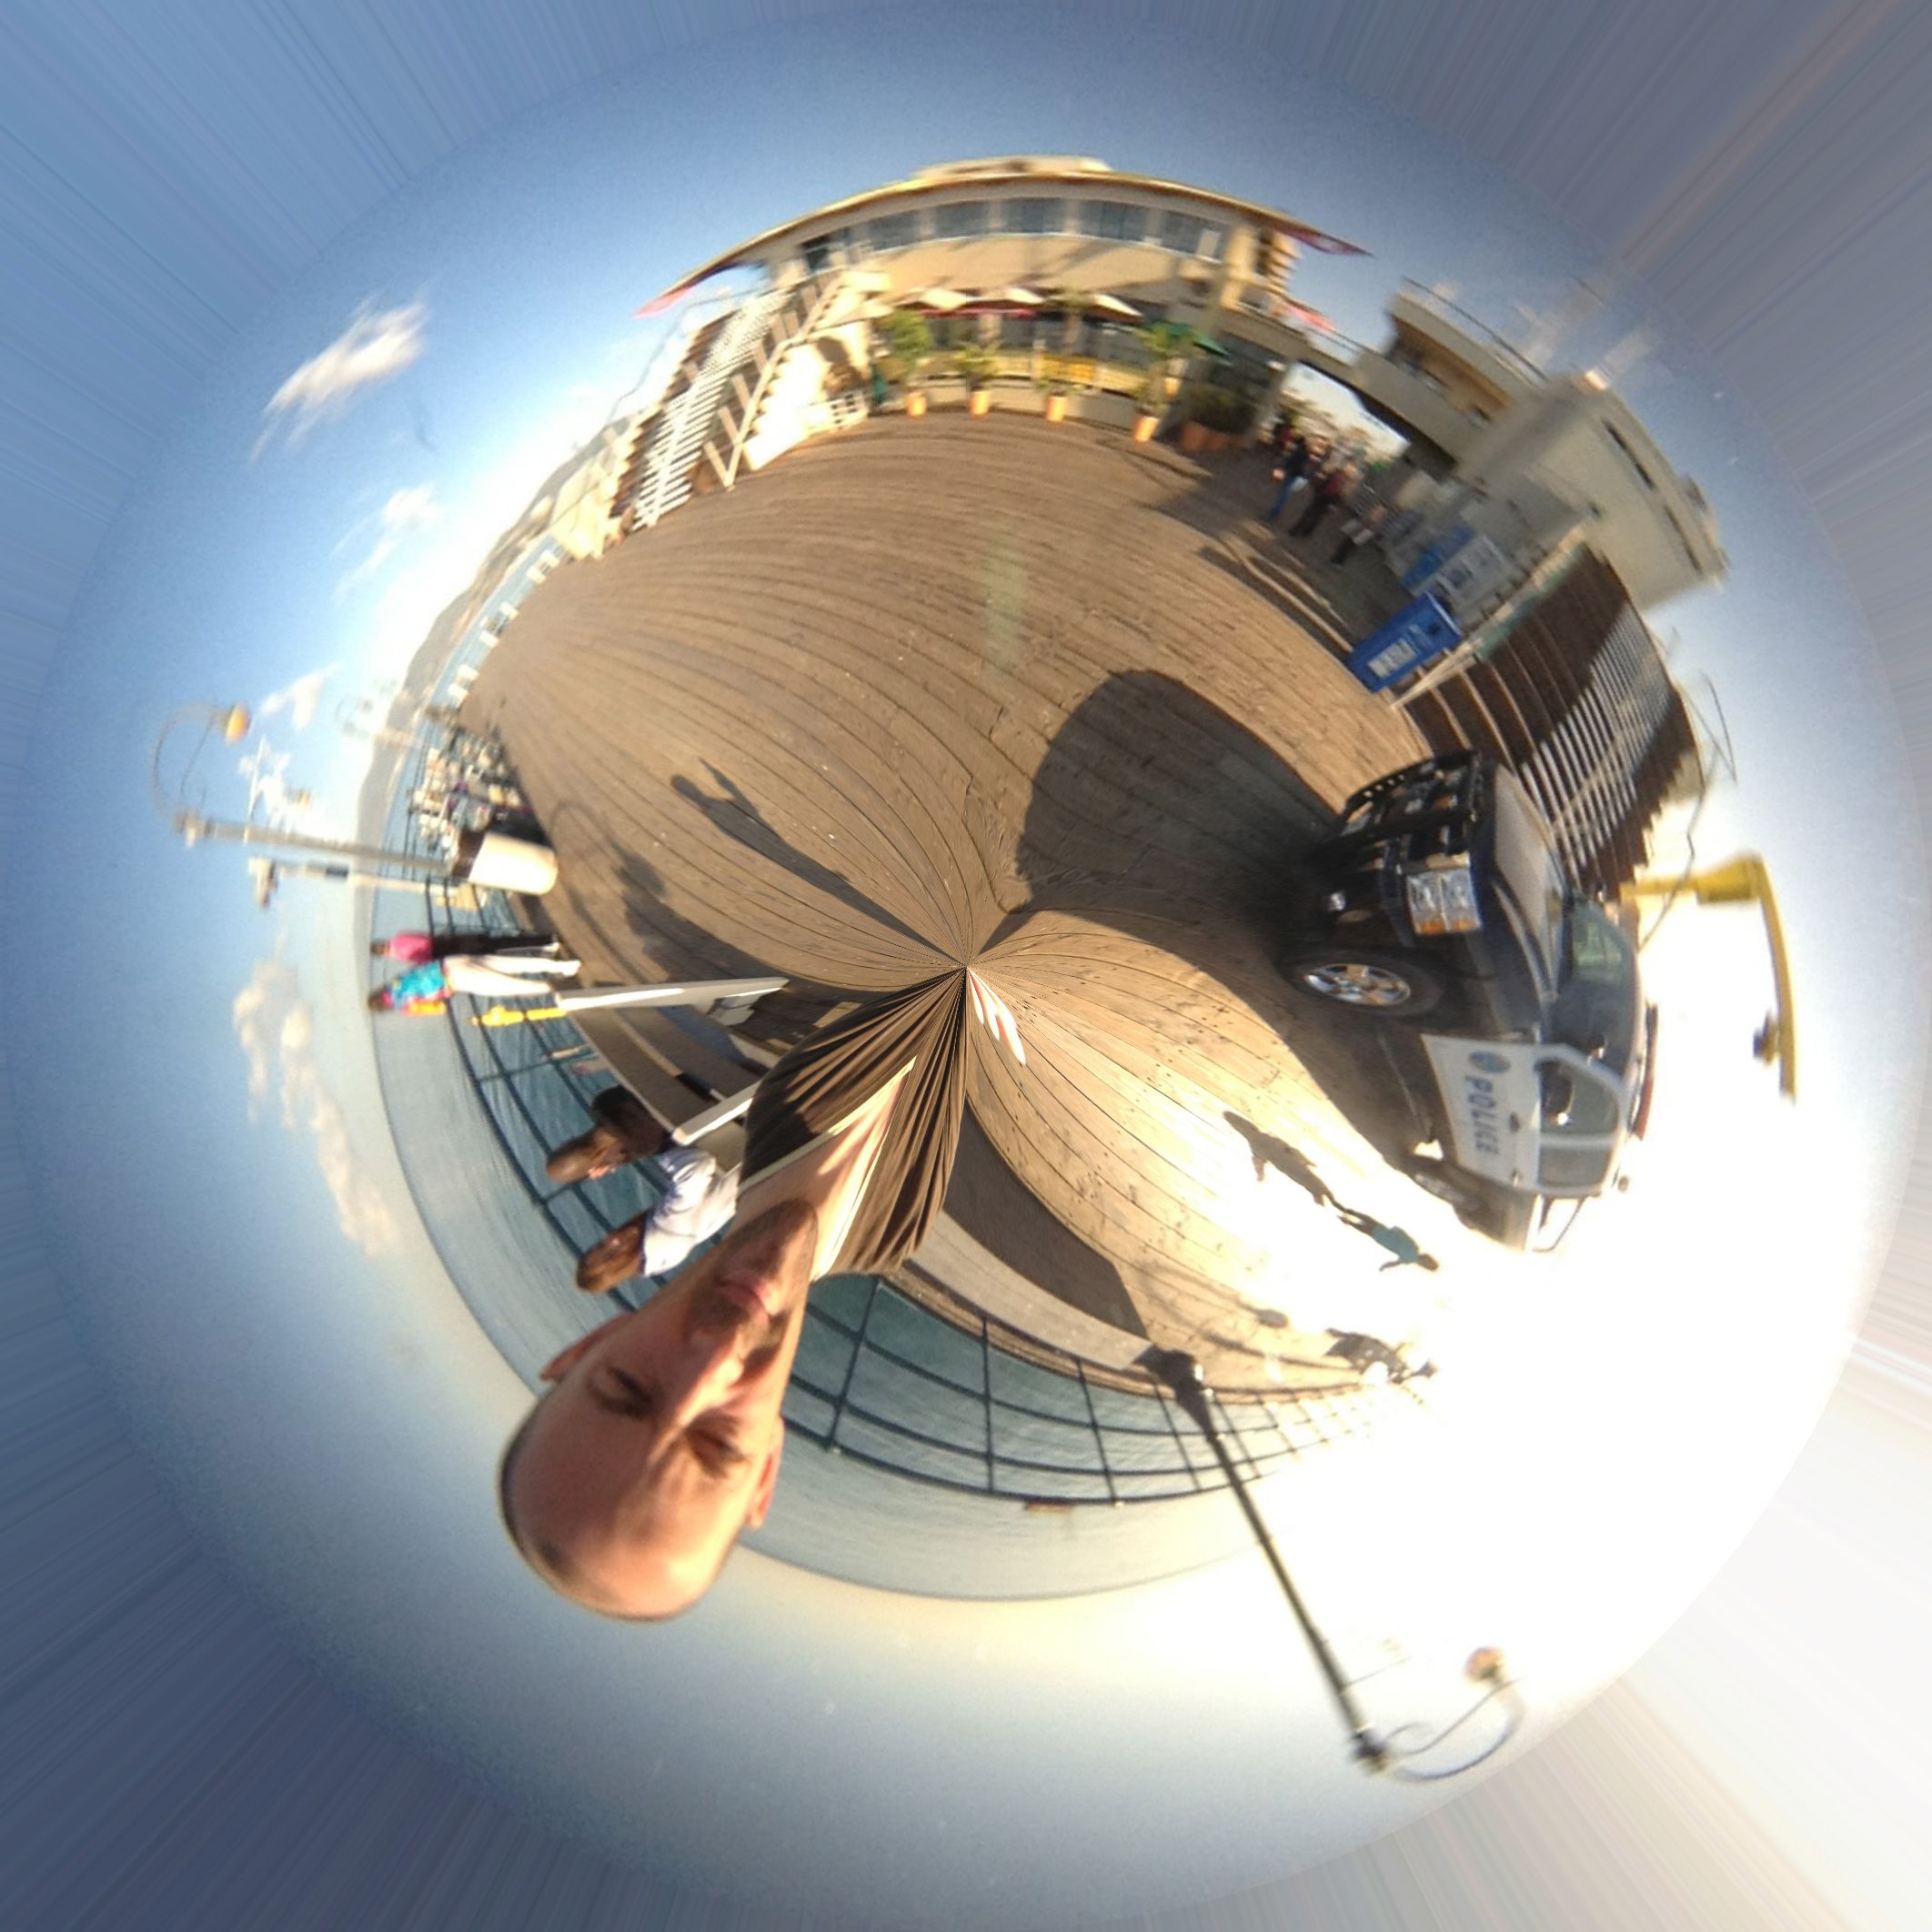 Little Planet from BubbleScope Image